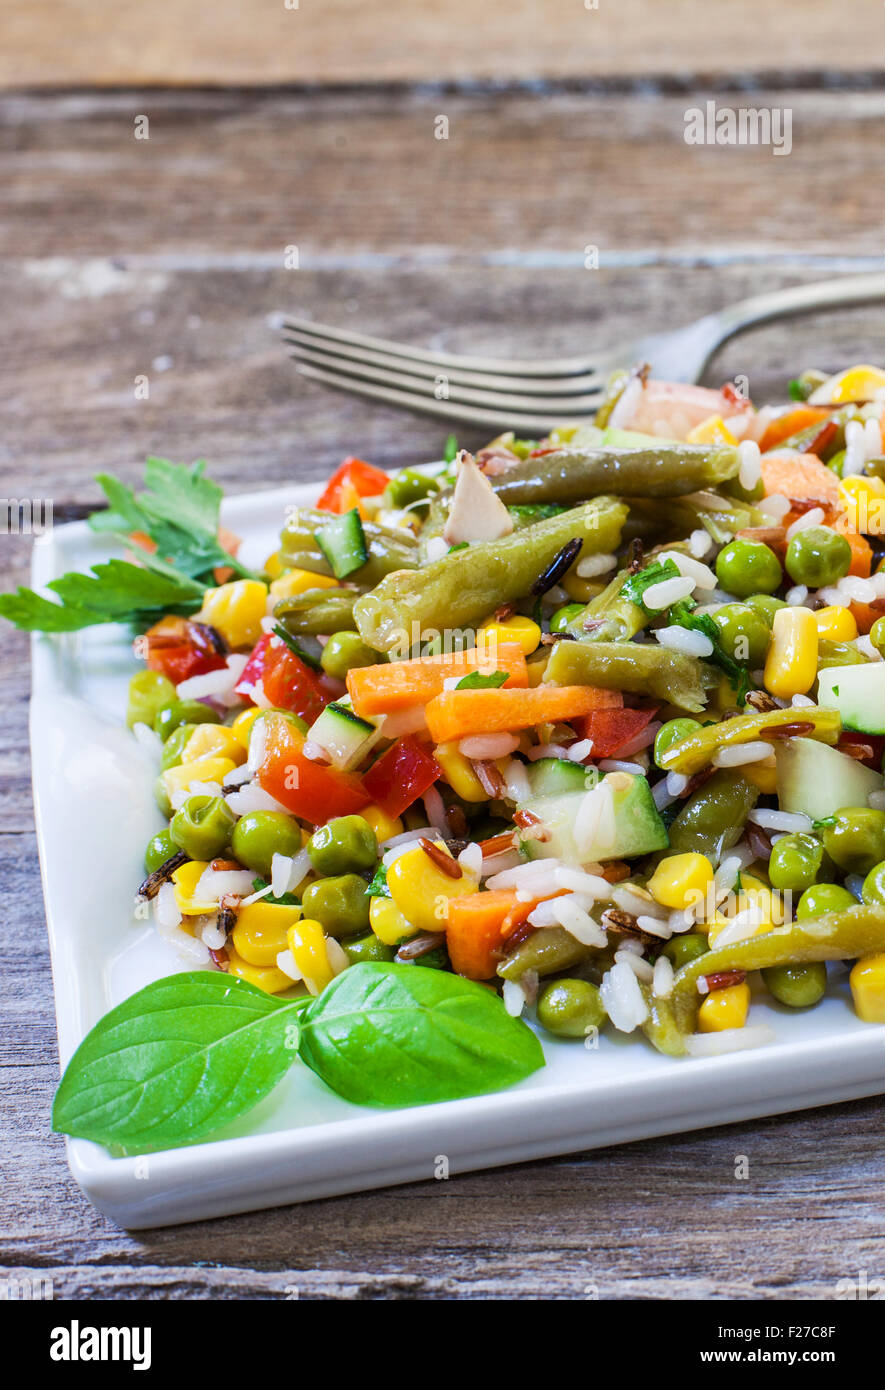 fresh rice salad with vegetables on white tray - Stock Image